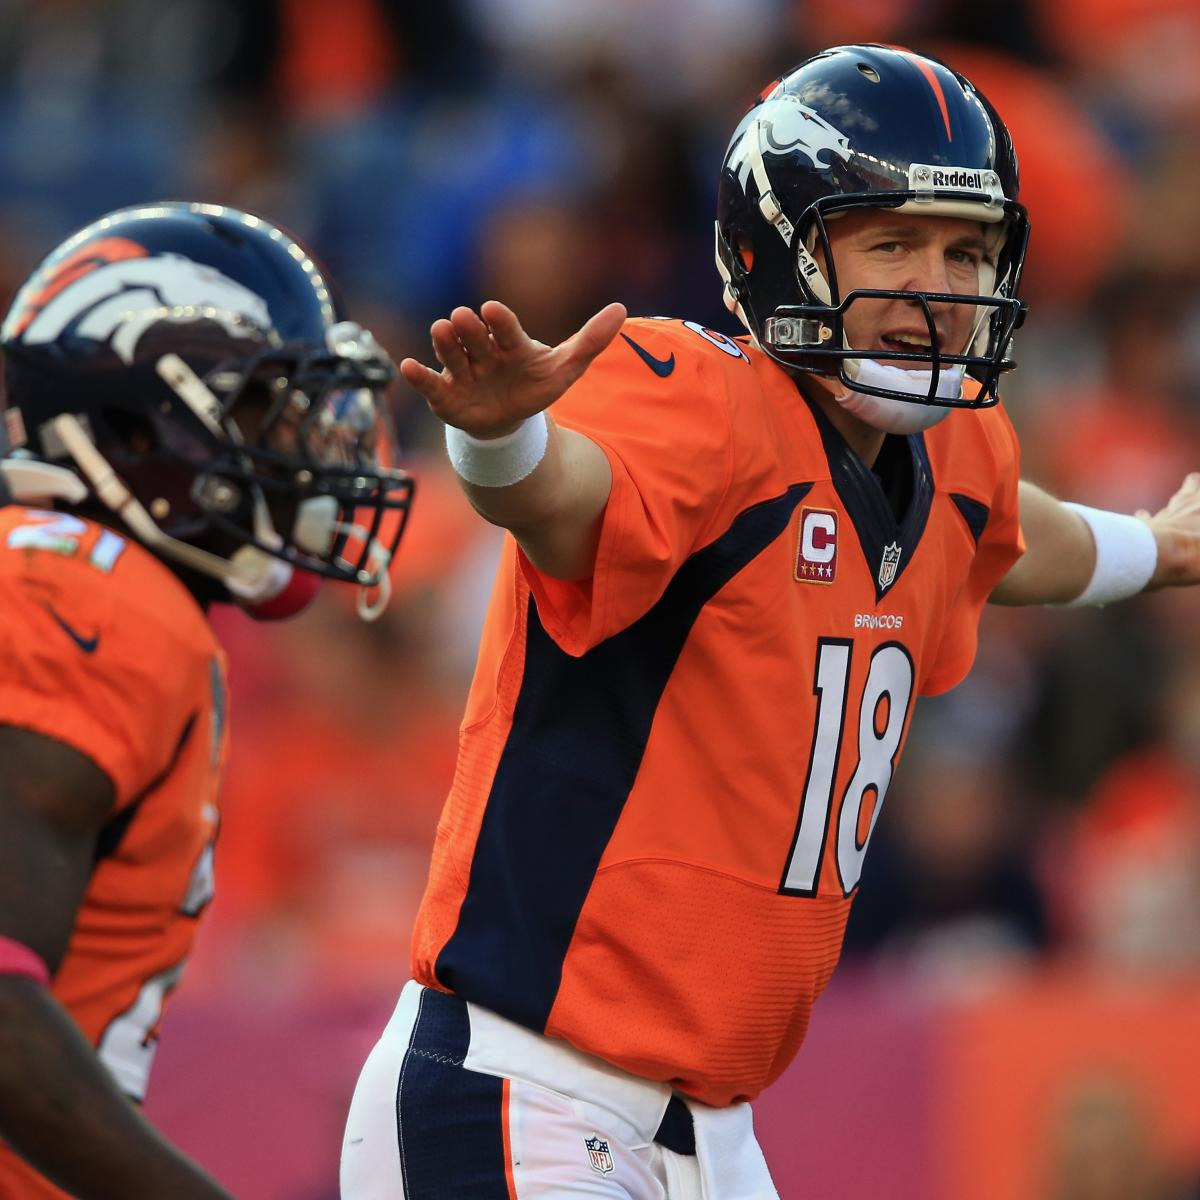 What To Expect From Peyton Manning And The Denver Broncos